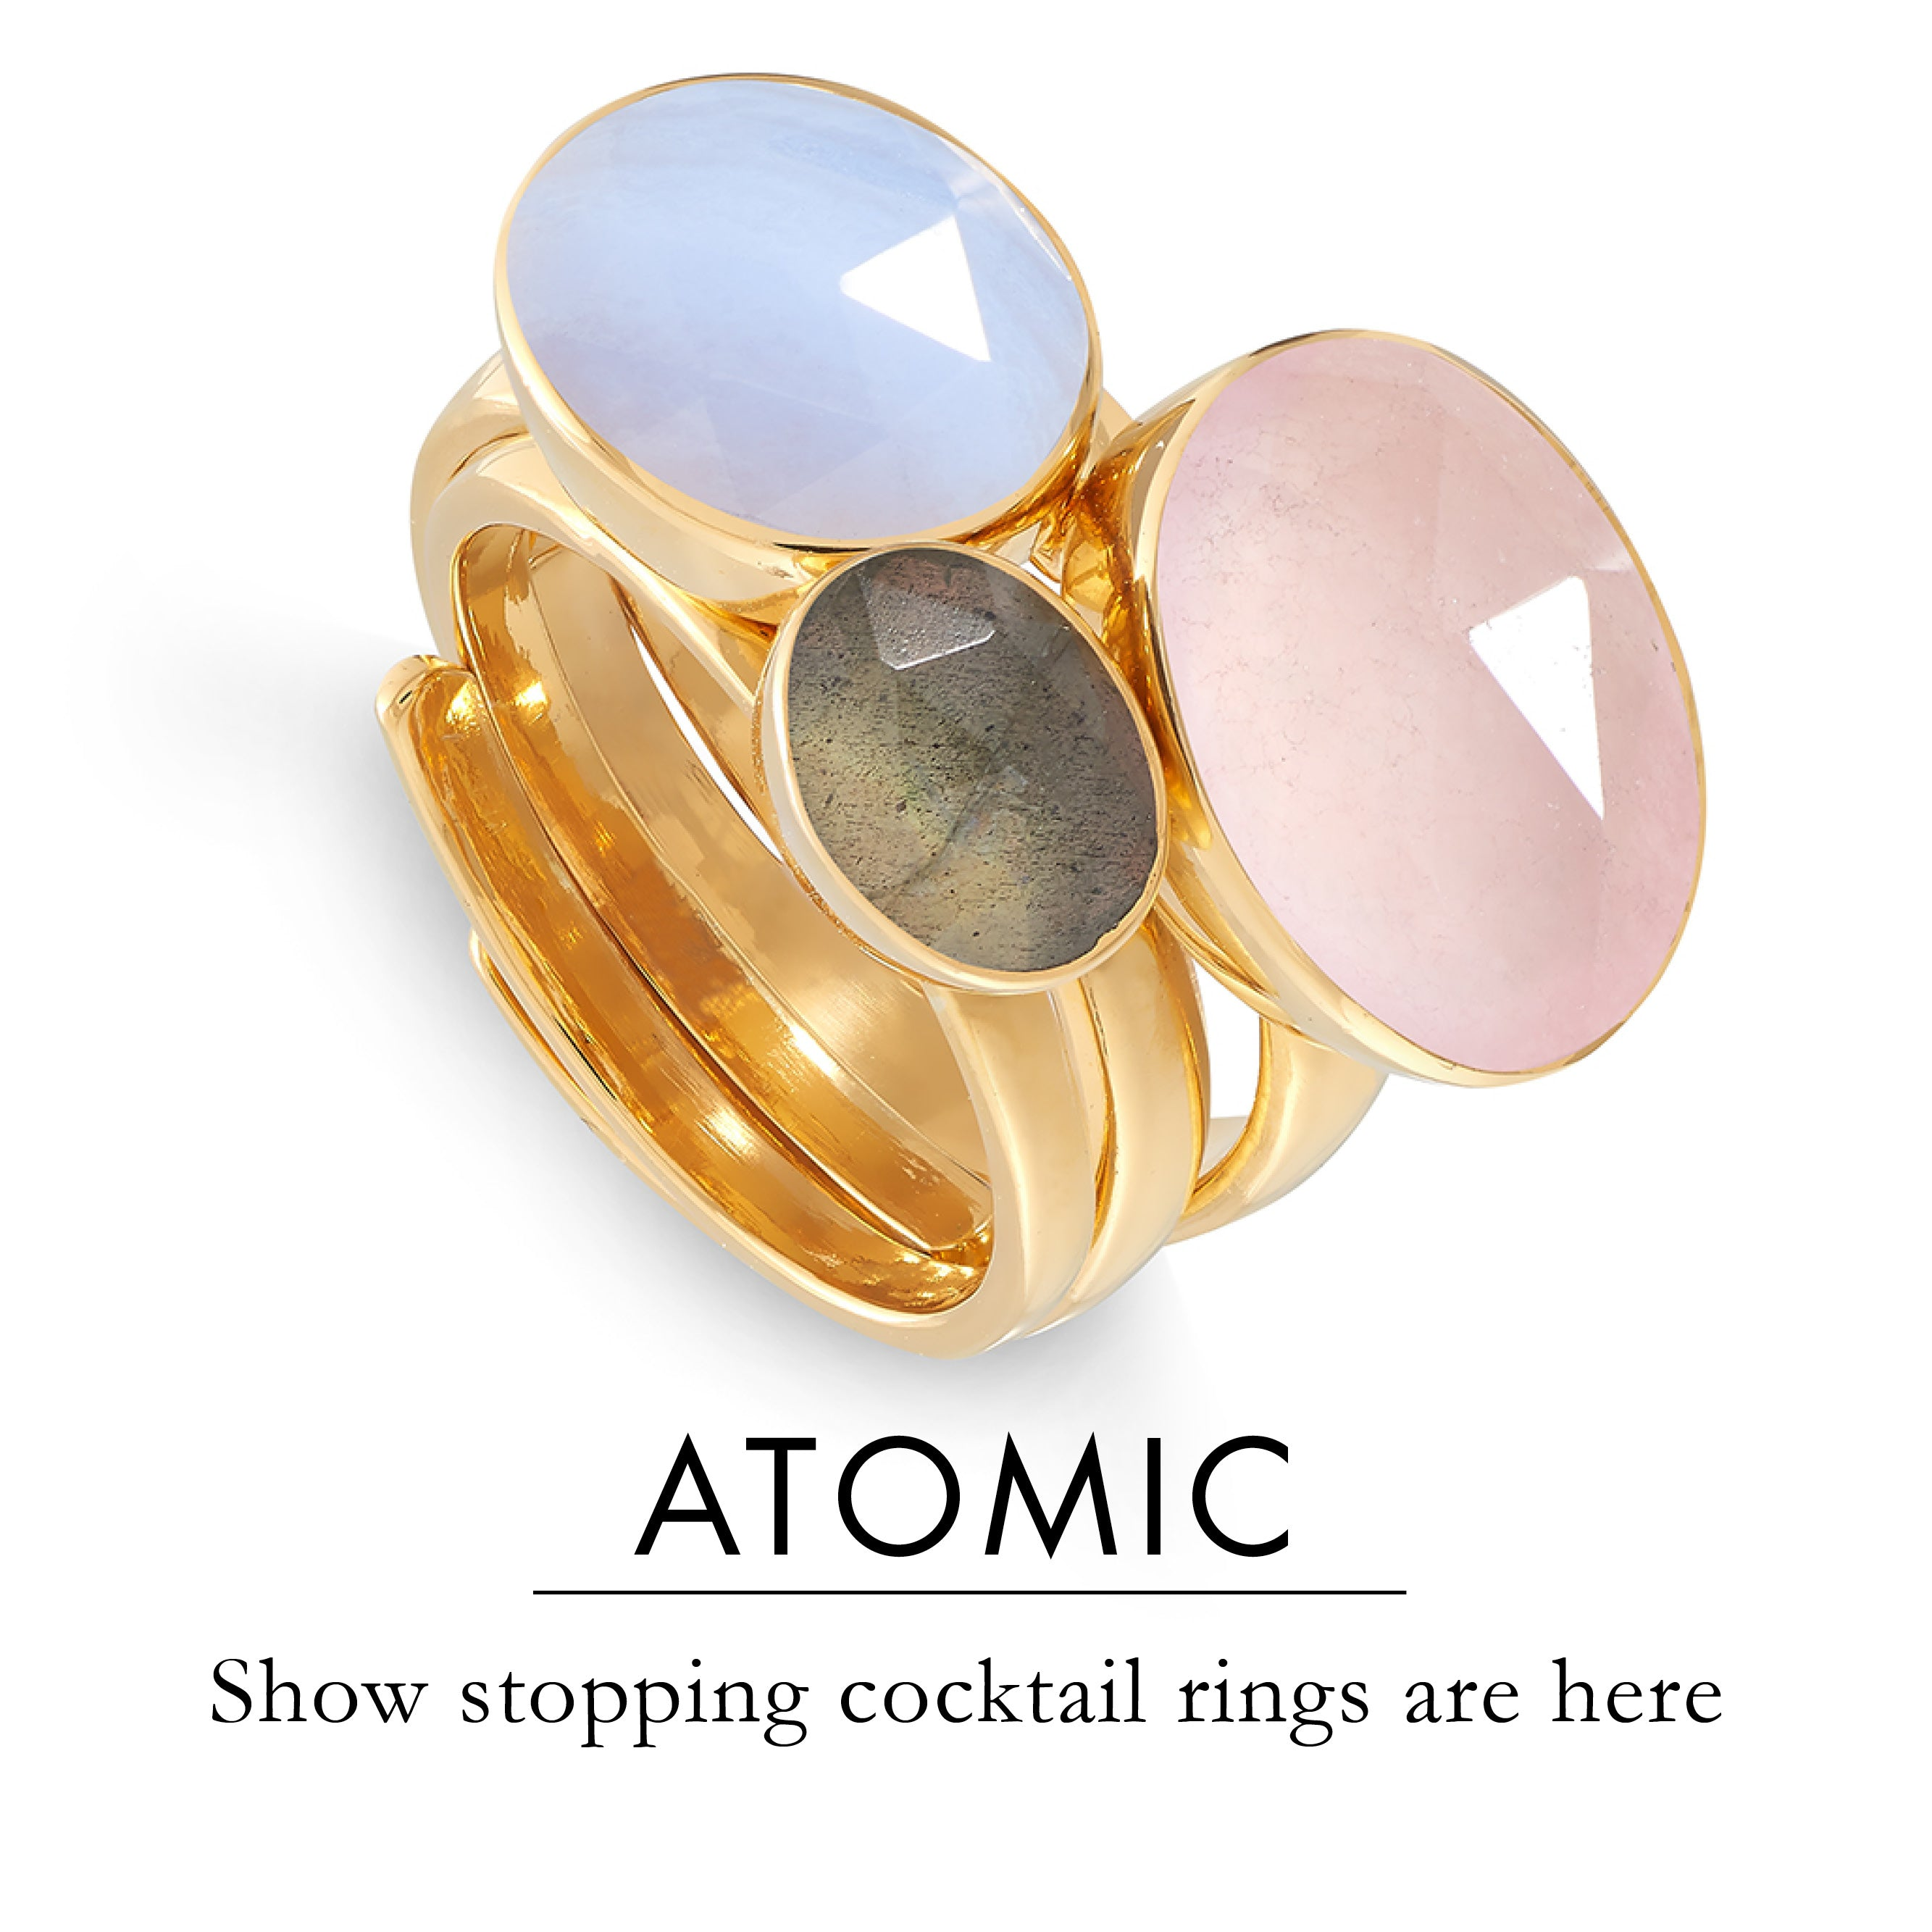 Atomic_Shopw_Stopping_Cocktail_Rings_Are_Here